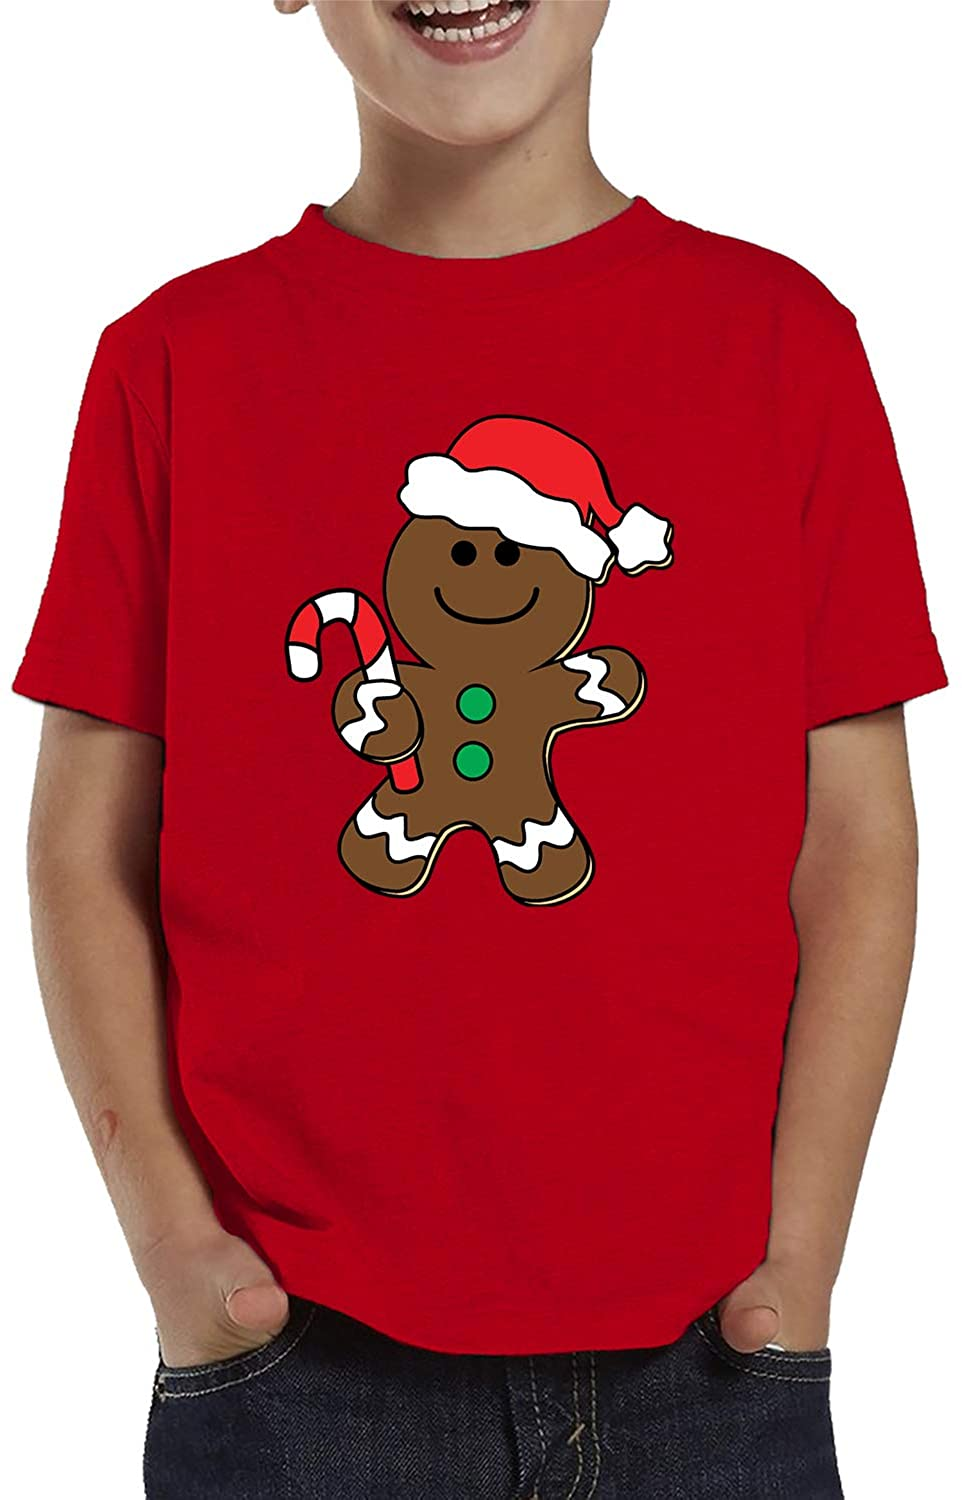 SpiritForged Apparel Christmas Gingerbread Man Toddler T-Shirt